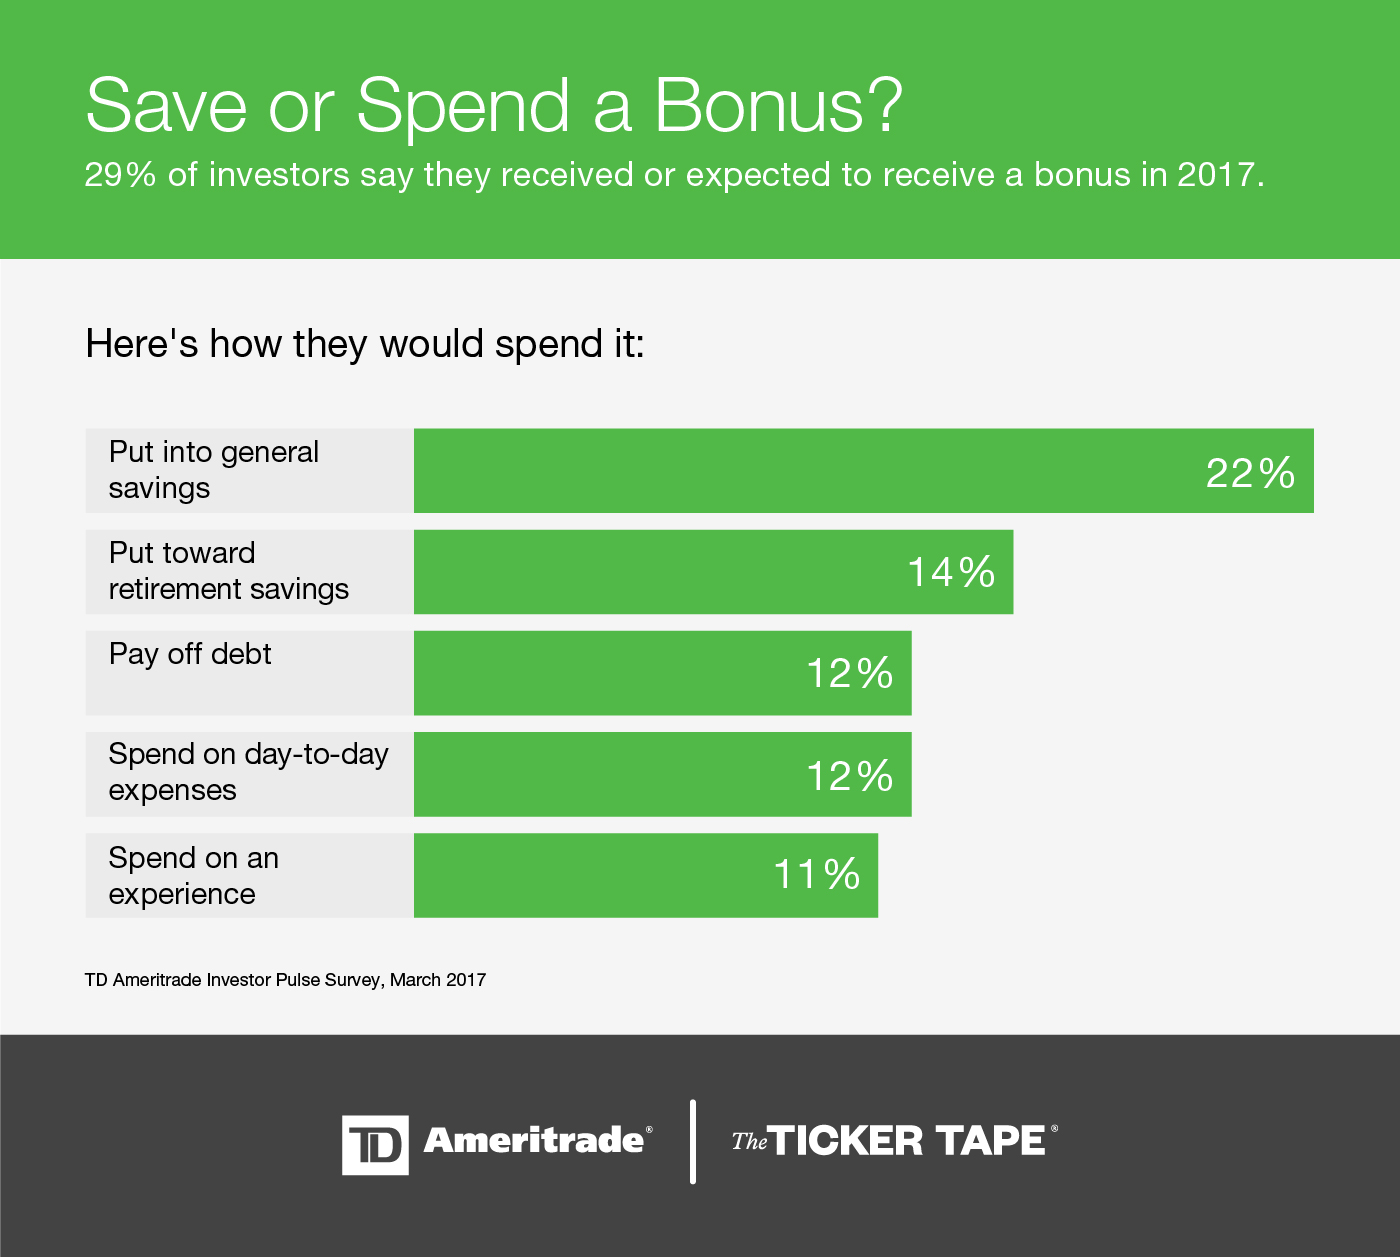 save or spend a bonus survey results